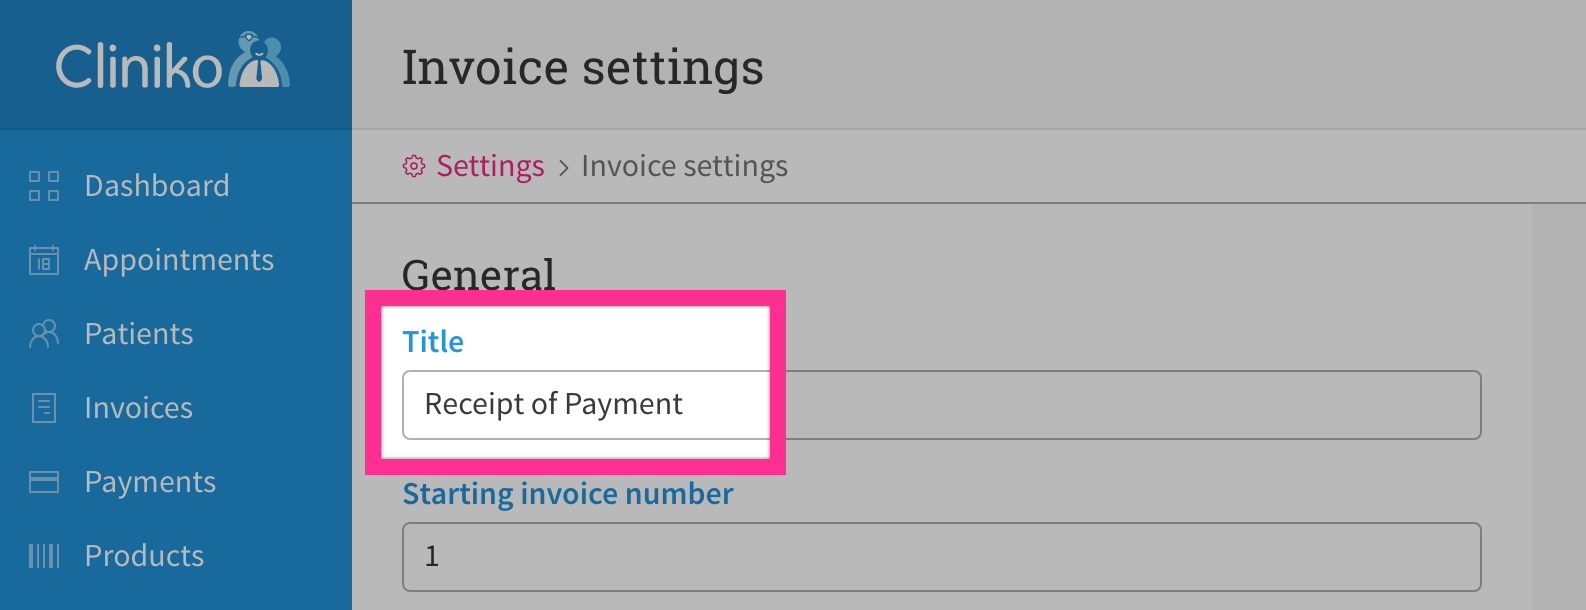 Rename Invoices Account Statements Cliniko Help - Whats an invoice